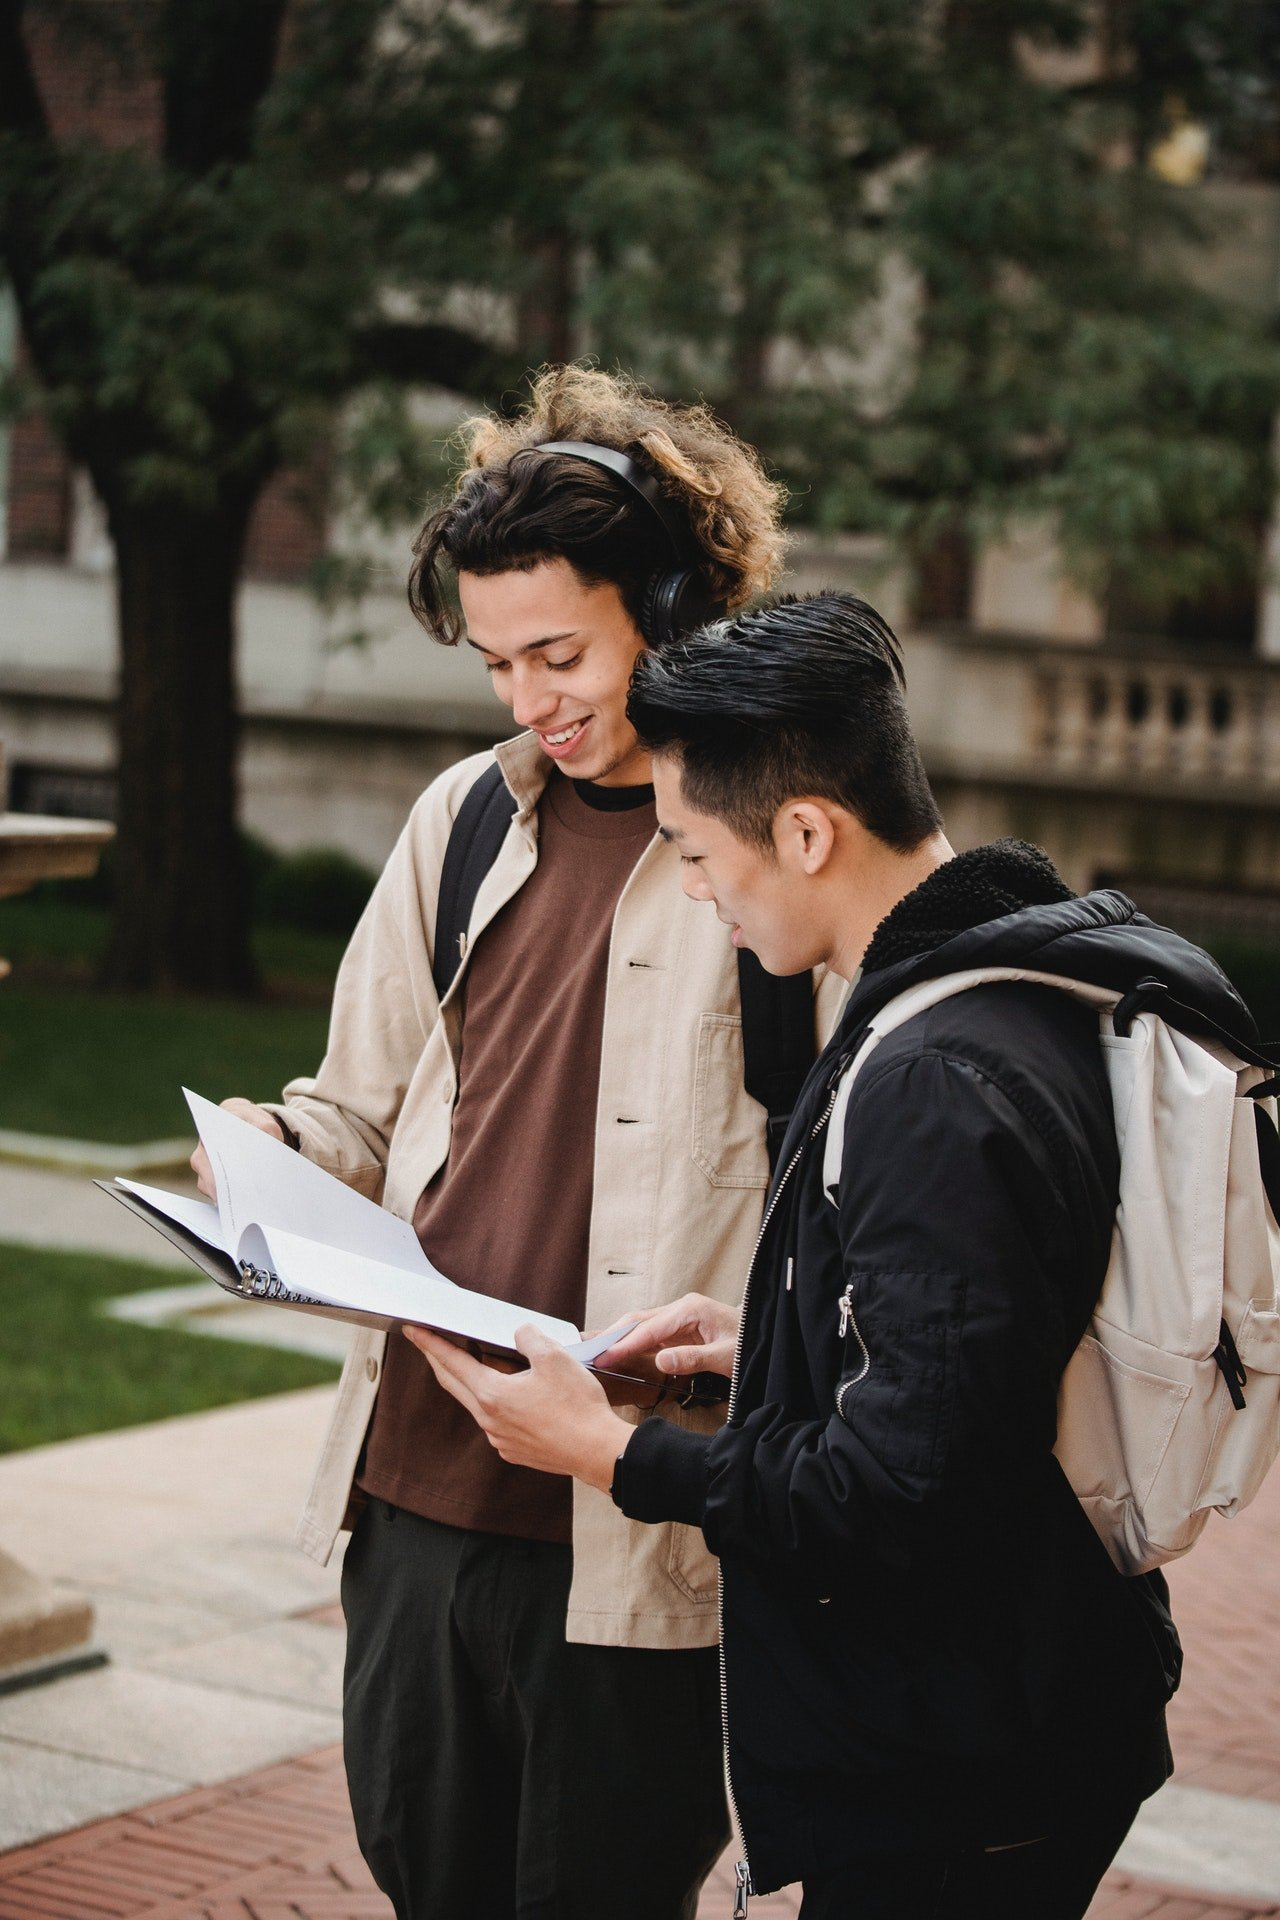 Two students looking at their notebook | Source: Pexels